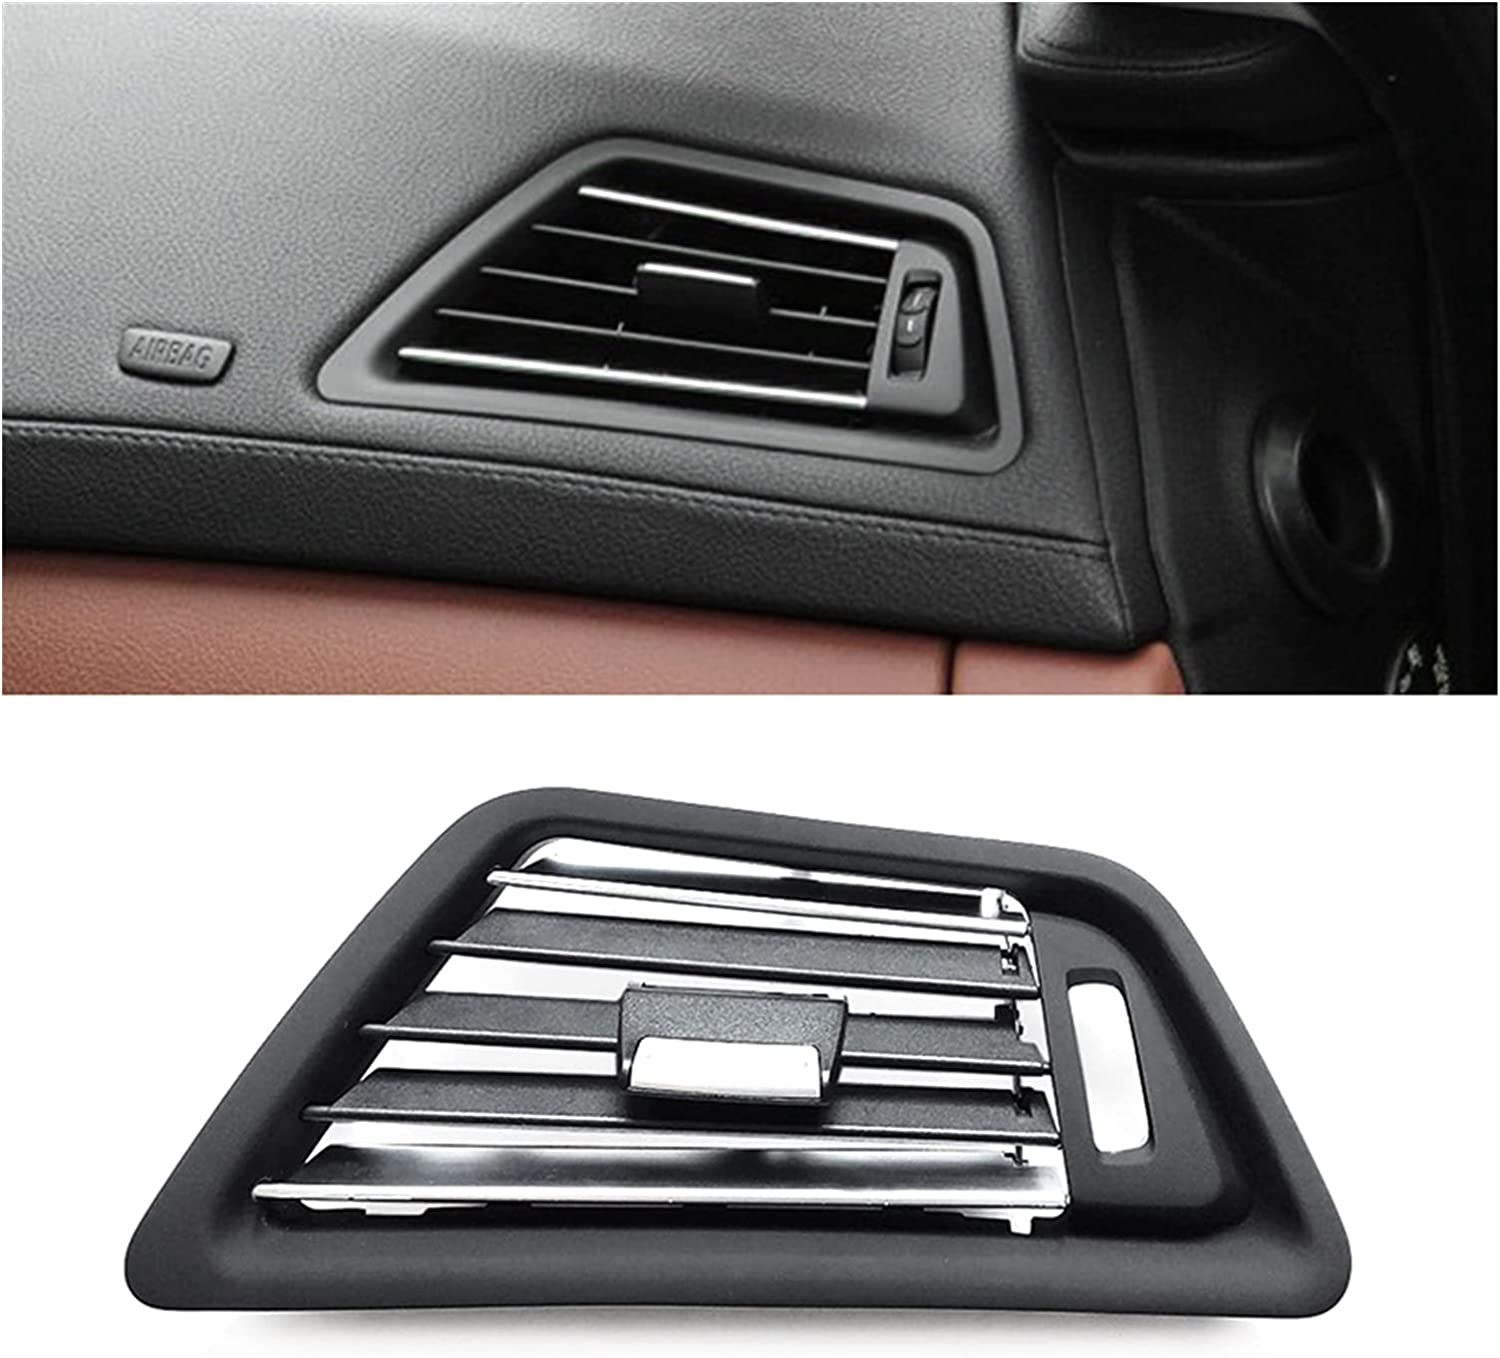 Iinger Luxury goods Front Console Right Air Vent Translated Fit for Panel Outlet Grille